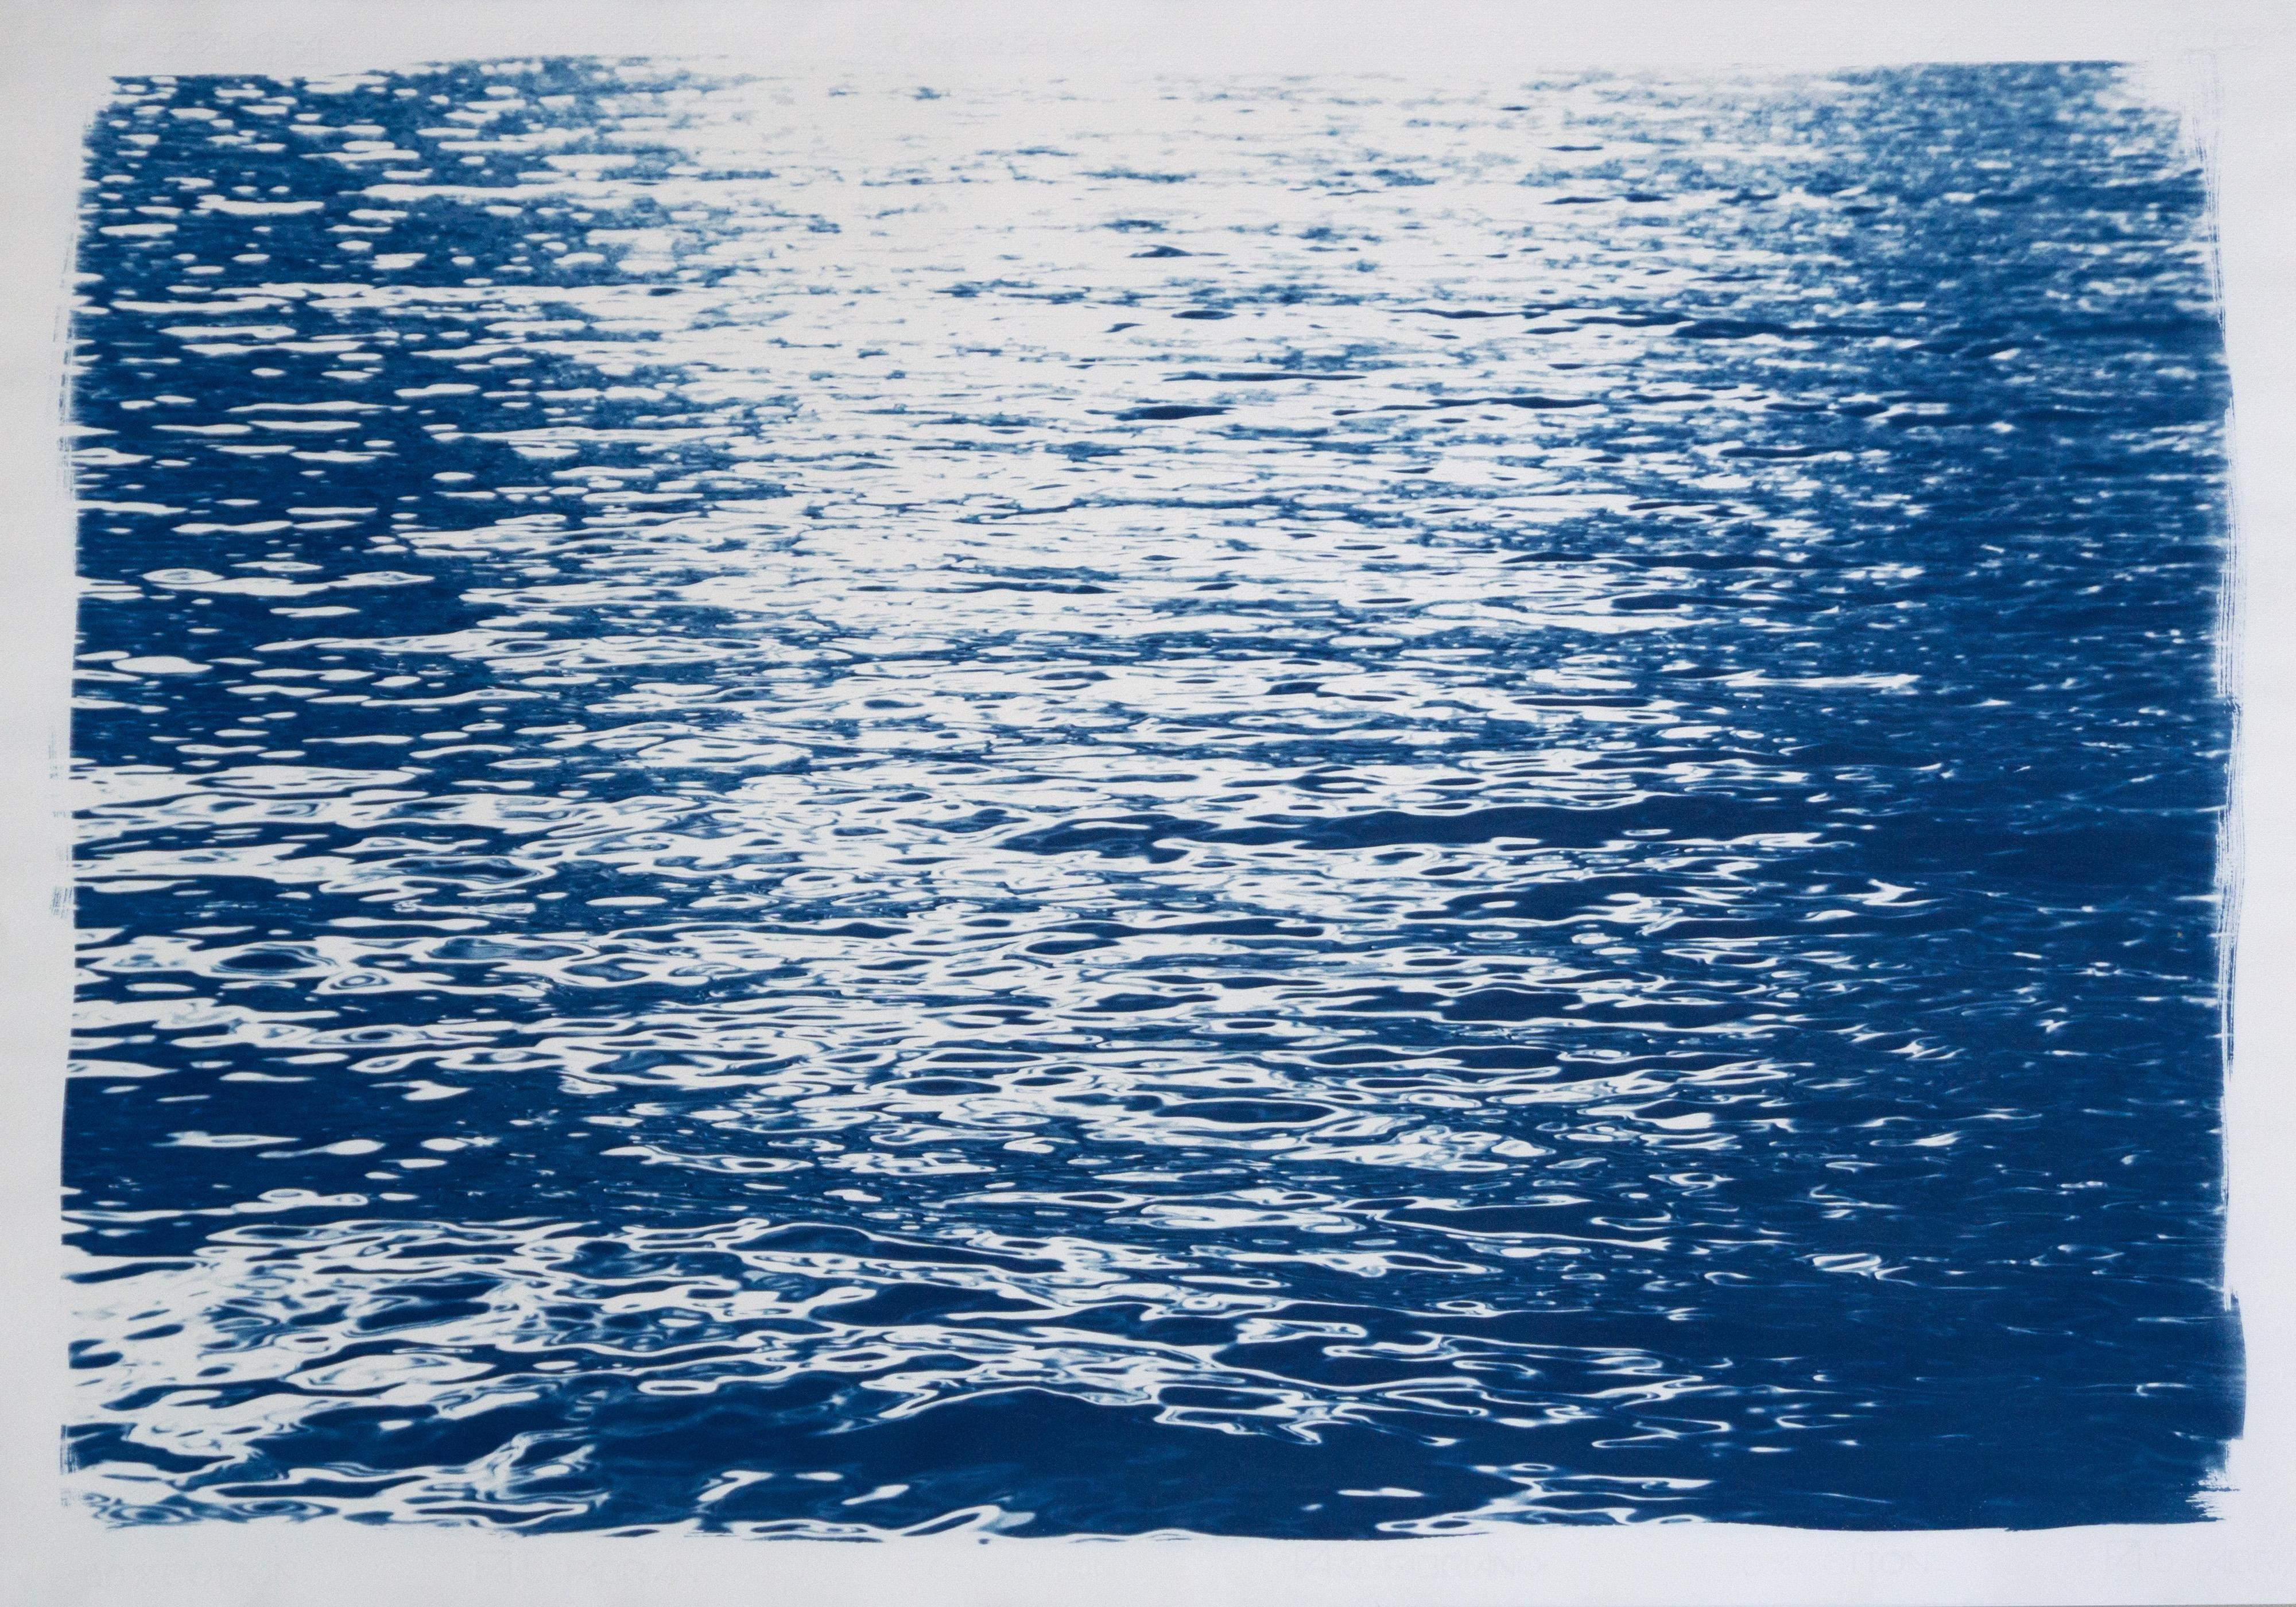 Lake Abstract Ripples, Nautical Contemporary Cyanotype of Water Reflections 2020